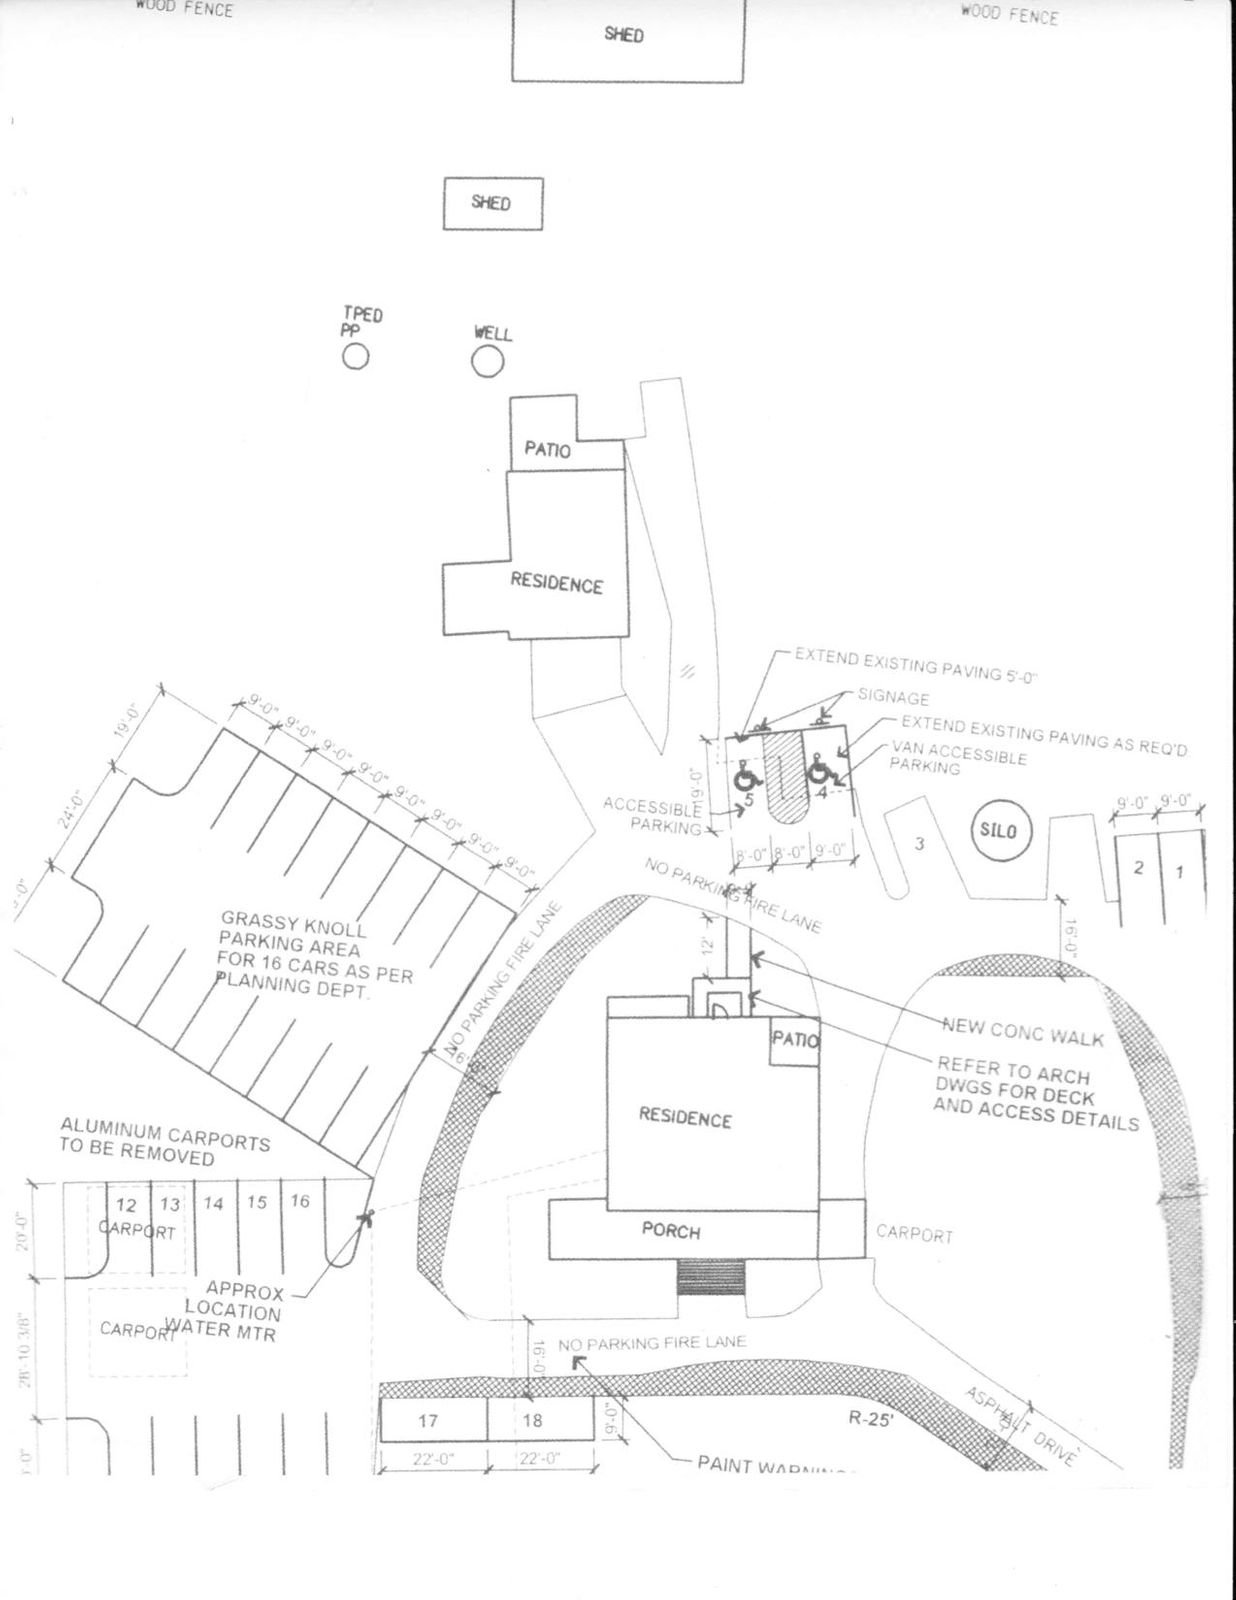 827 Broadway _ Plan View_Grounds